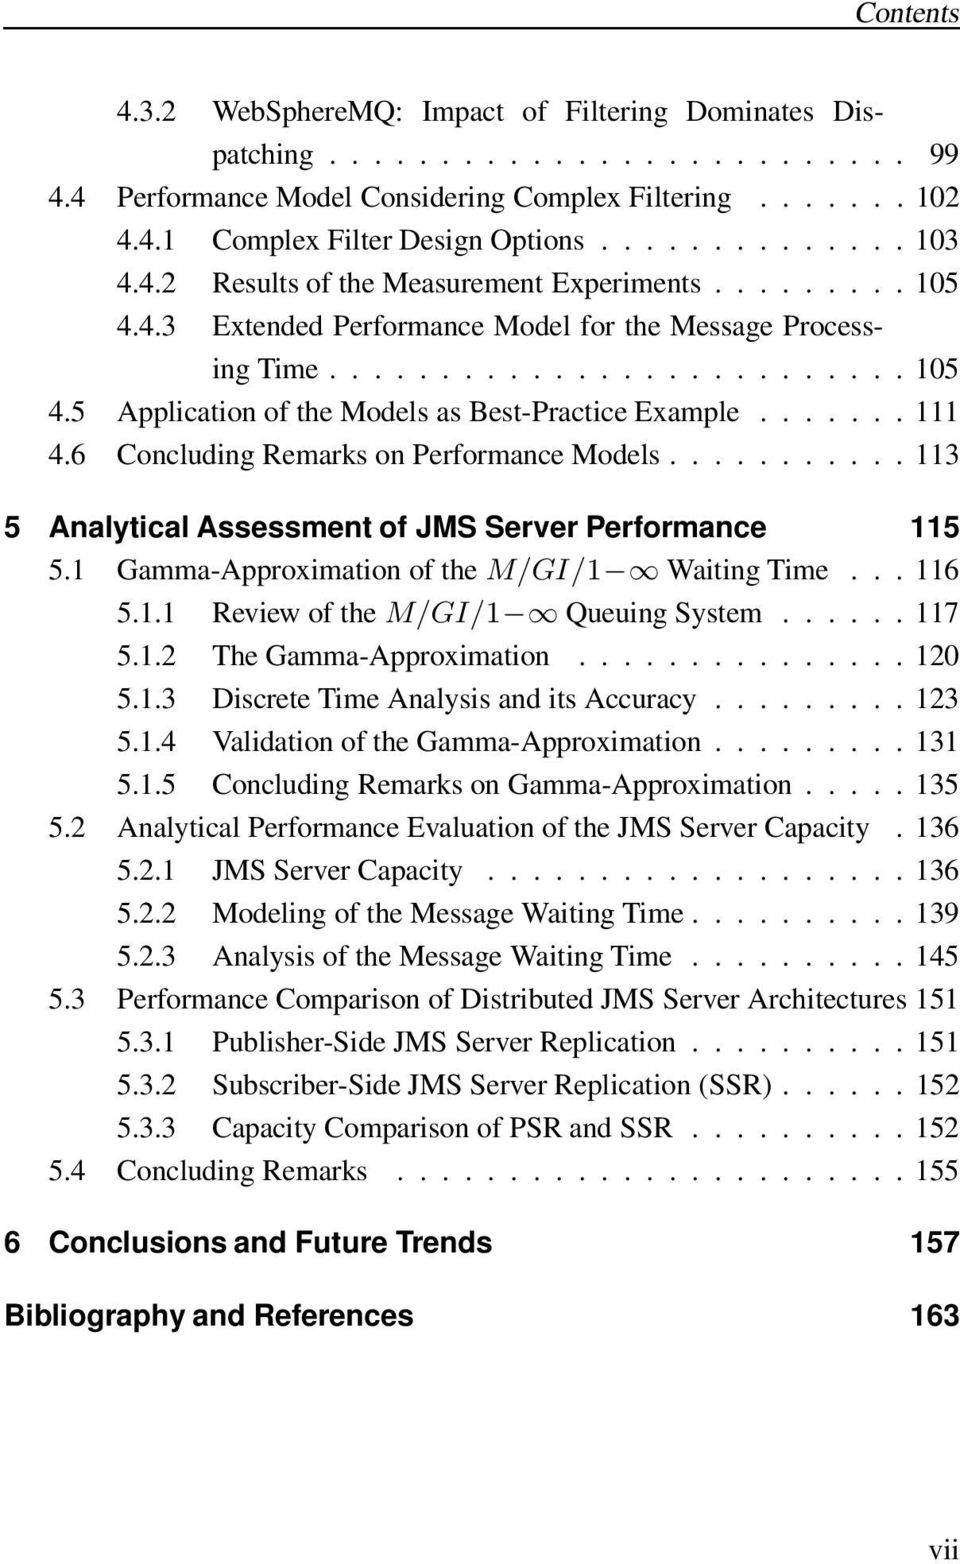 ...... 111 4.6 Concluding Remarks on Performance Models........... 113 5 Analytical Assessment of JMS Server Performance 115 5.1 Gamma-Approximation of the M/GI/1 Waiting Time... 116 5.1.1 Review of the M/GI/1 Queuing System.